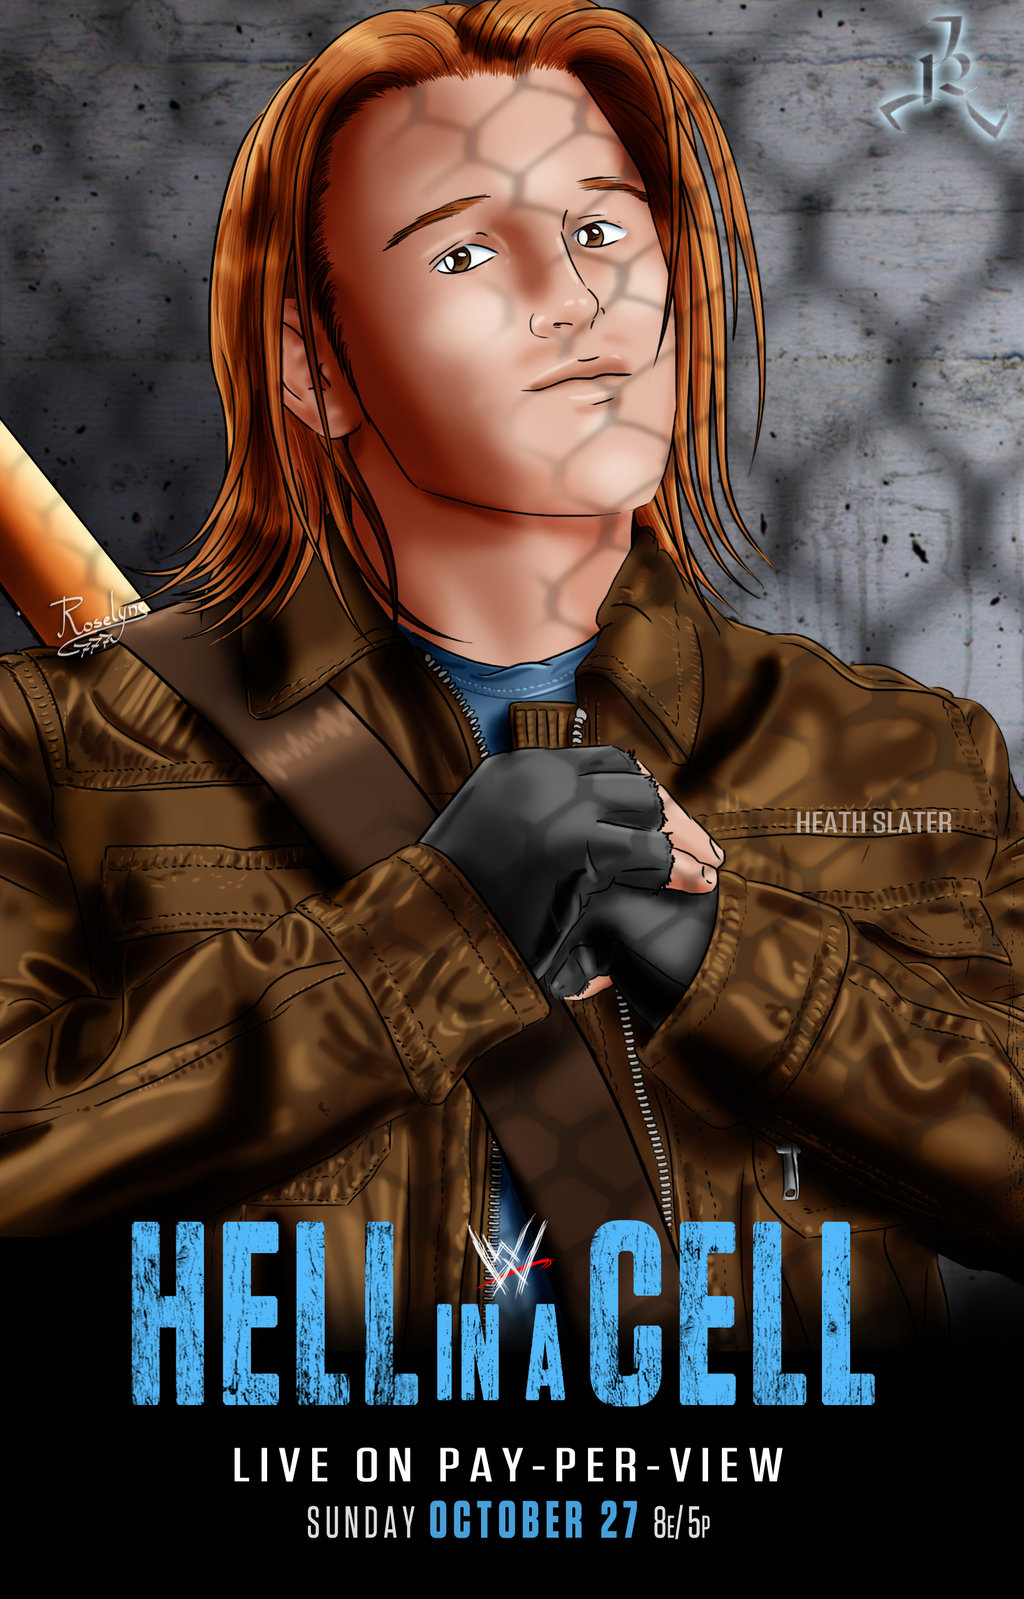 WWE Hell In A Cell 2013 Backgrounds, Compatible - PC, Mobile, Gadgets  1024x1599 px